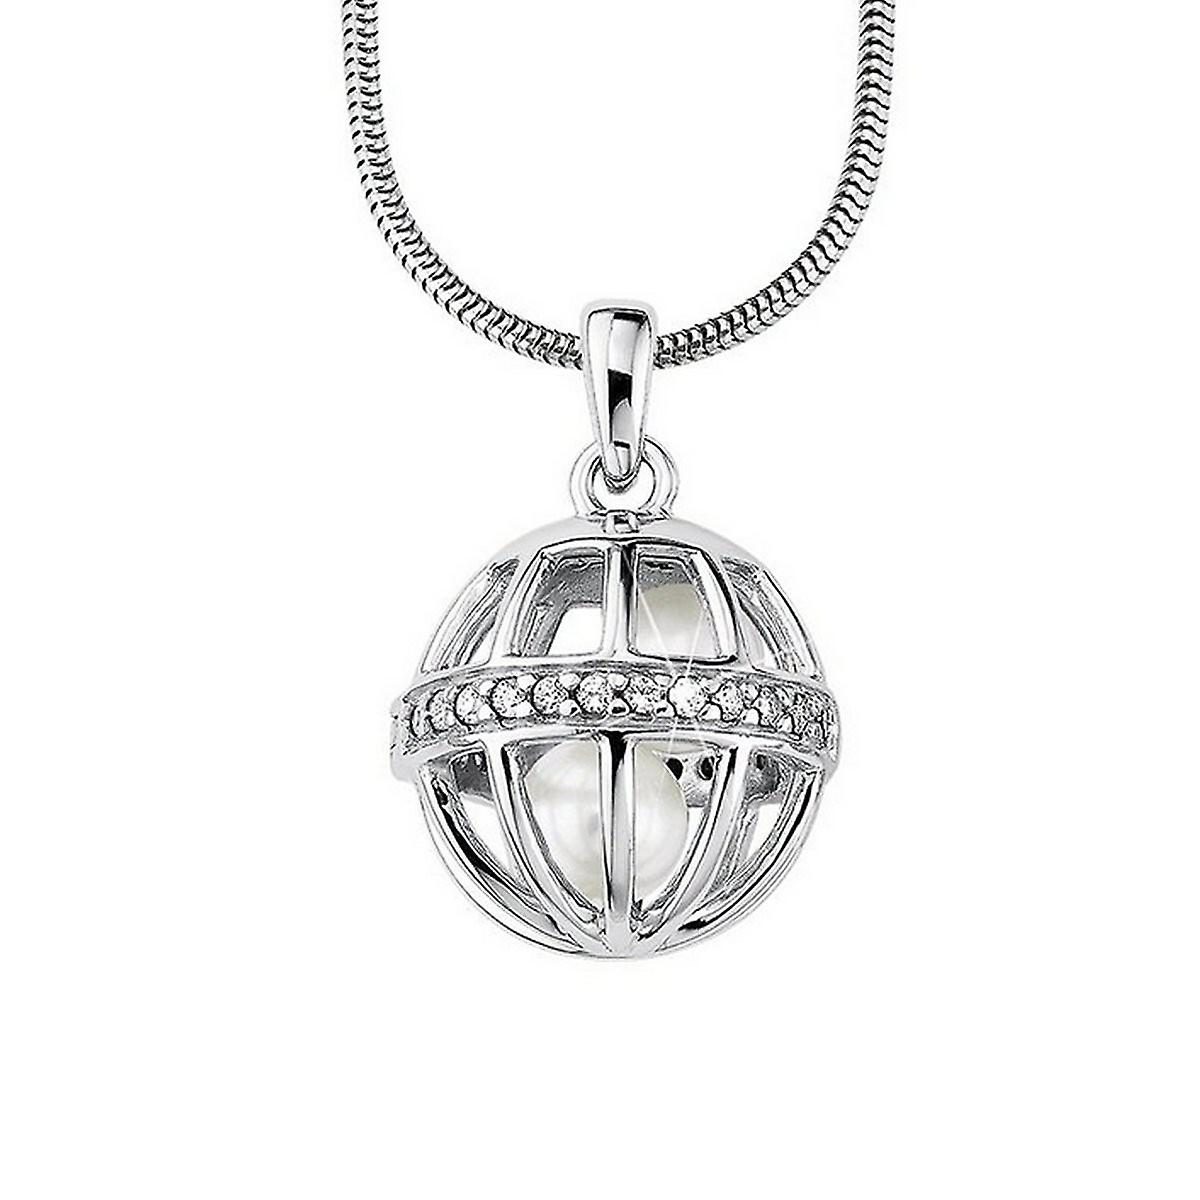 s.Oliver Jewel Damen Kette Collier Silber Zyrkonia SO641/1 - 385817